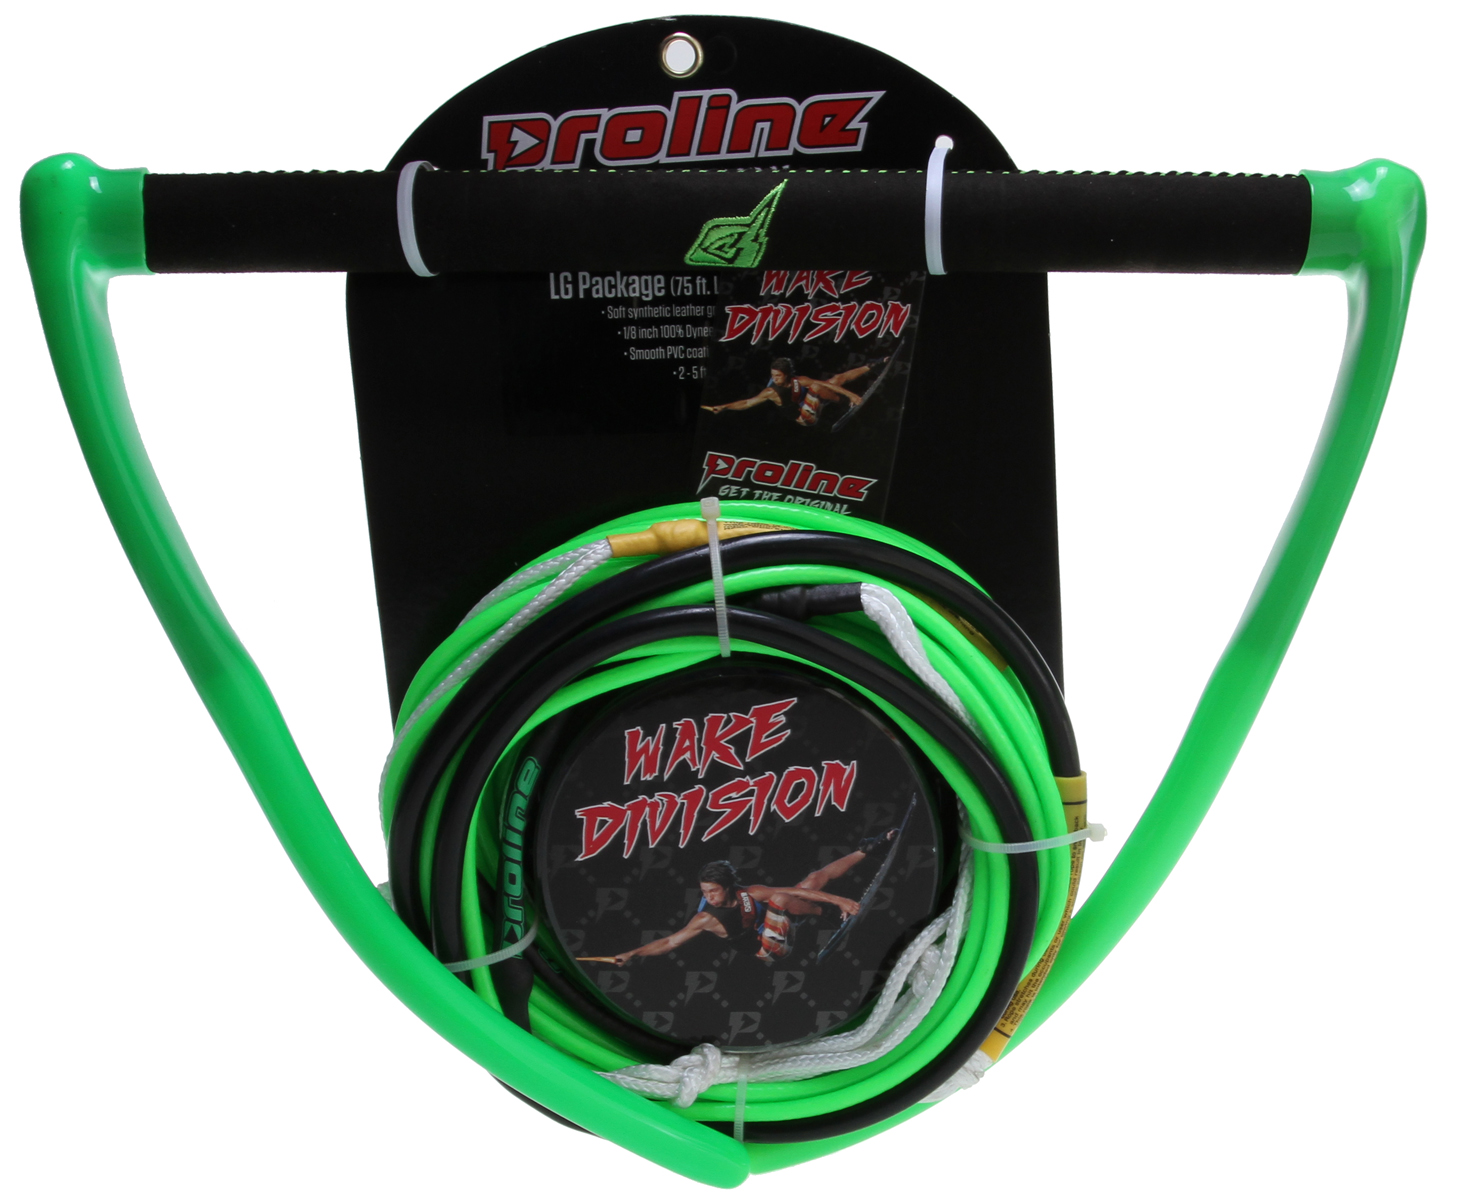 Wake Key Features of the Proline LG Rope/Handle Package 75ft: Soft synthetic leather grip for ultimate comfort 100% Dyneema non-stretch line Single Urethane coated weave for durability Smooth PVC coating eliminates knots 2 - 5 ft sections - $119.99